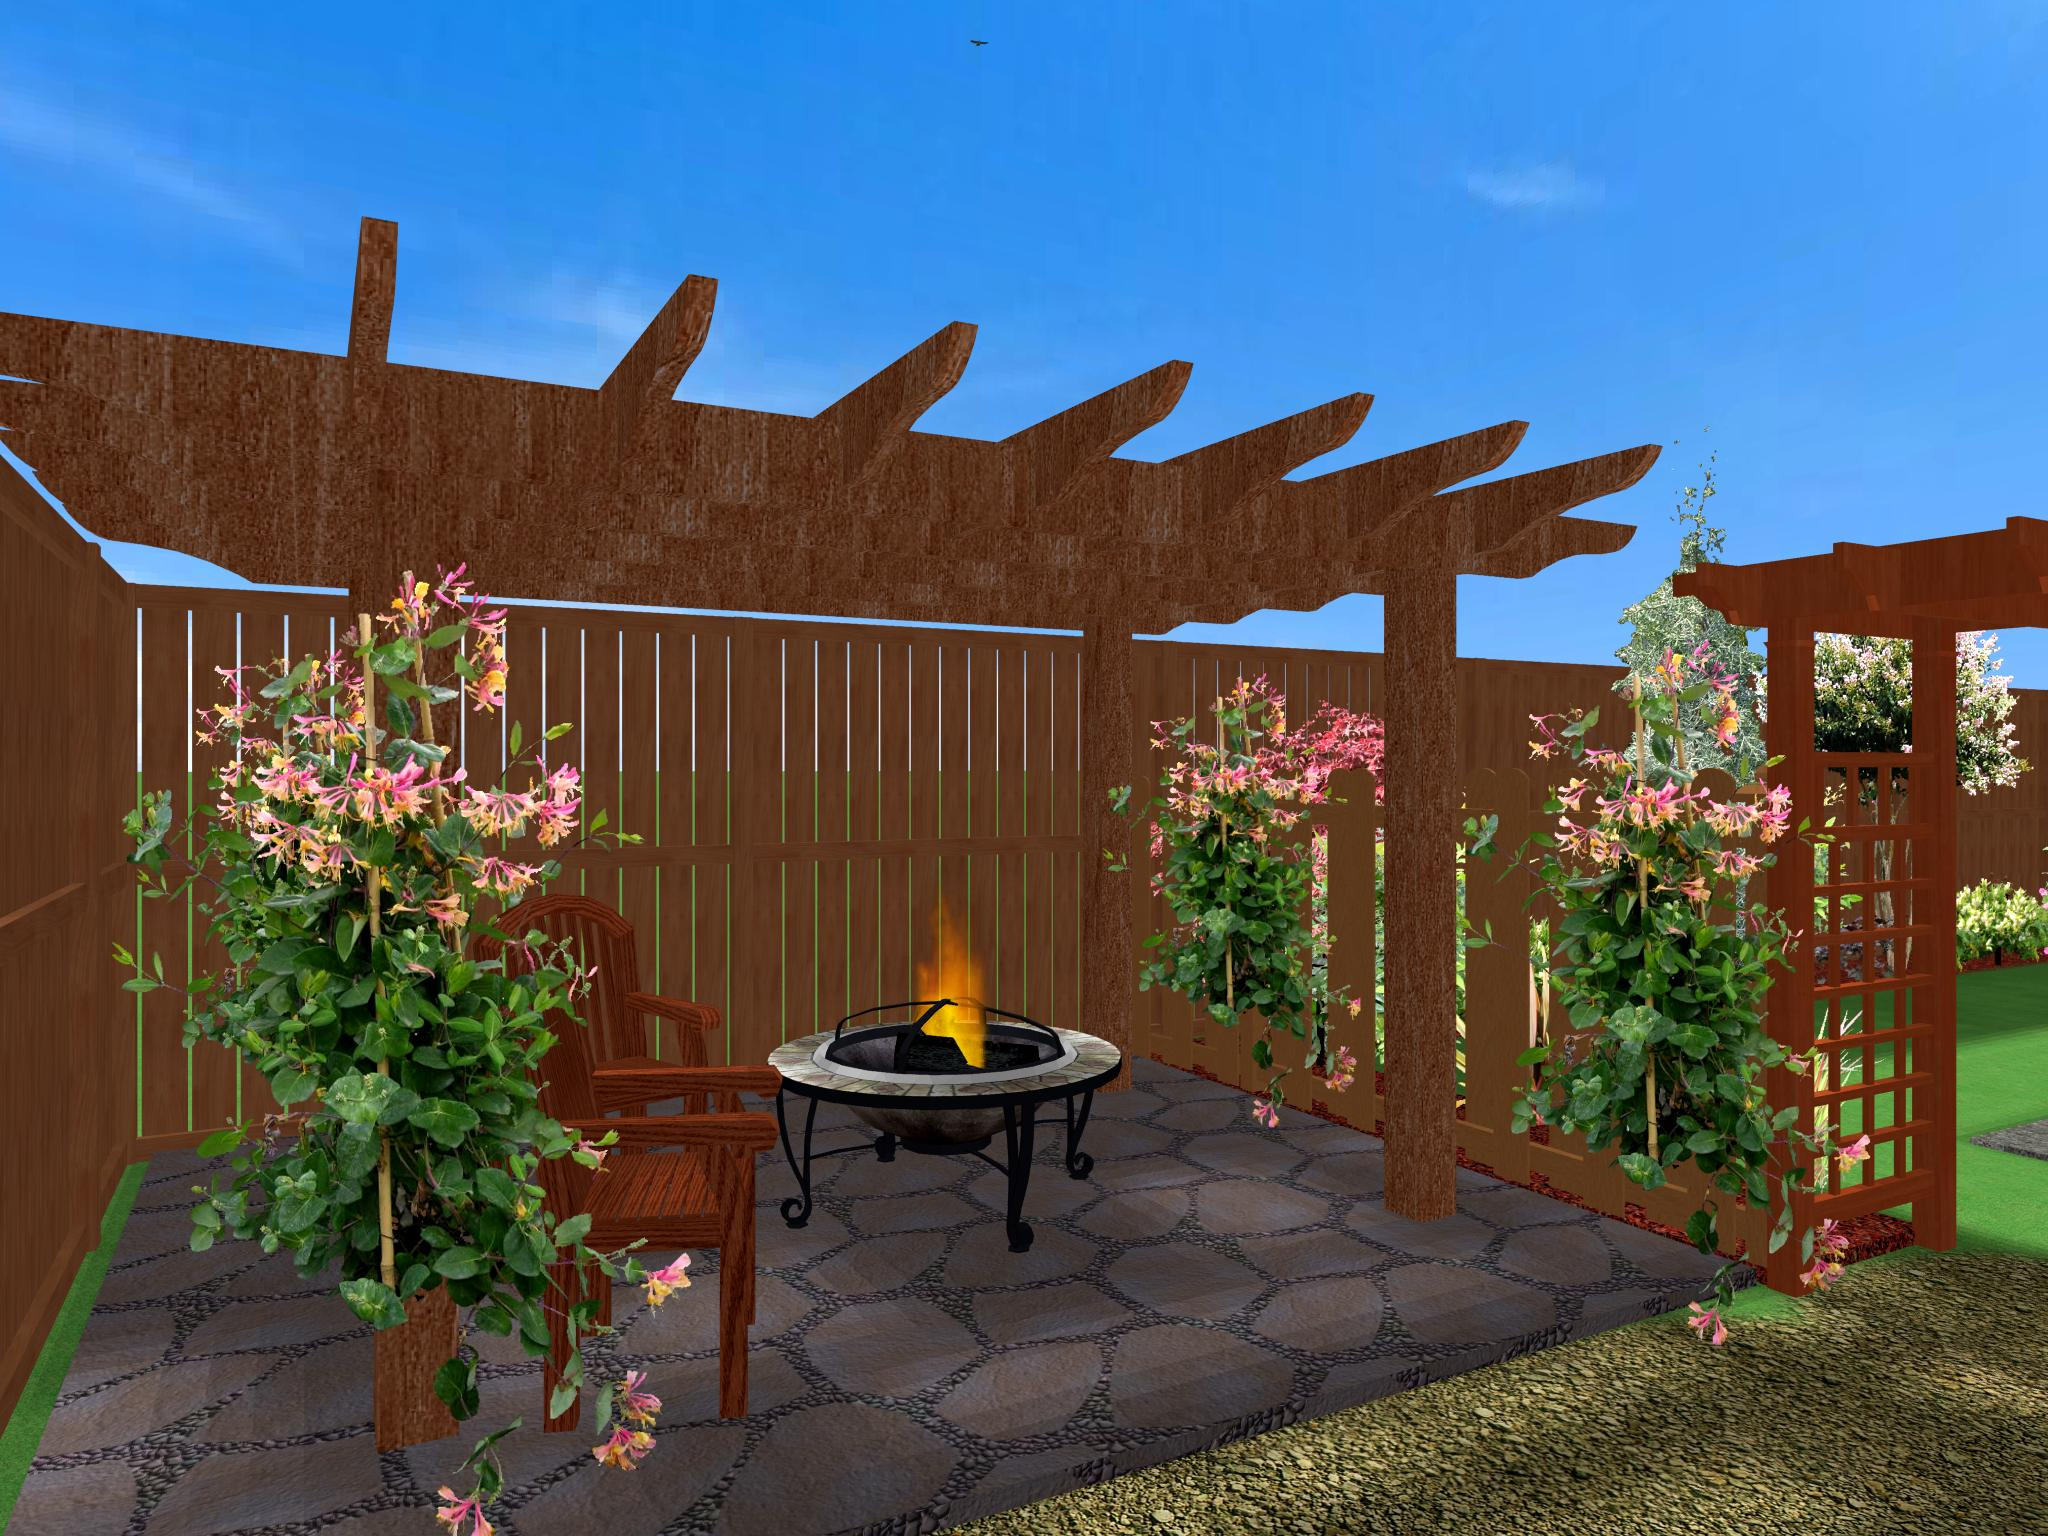 Pergola Pergola Construction And Pergola Design Pergola Plans And Www